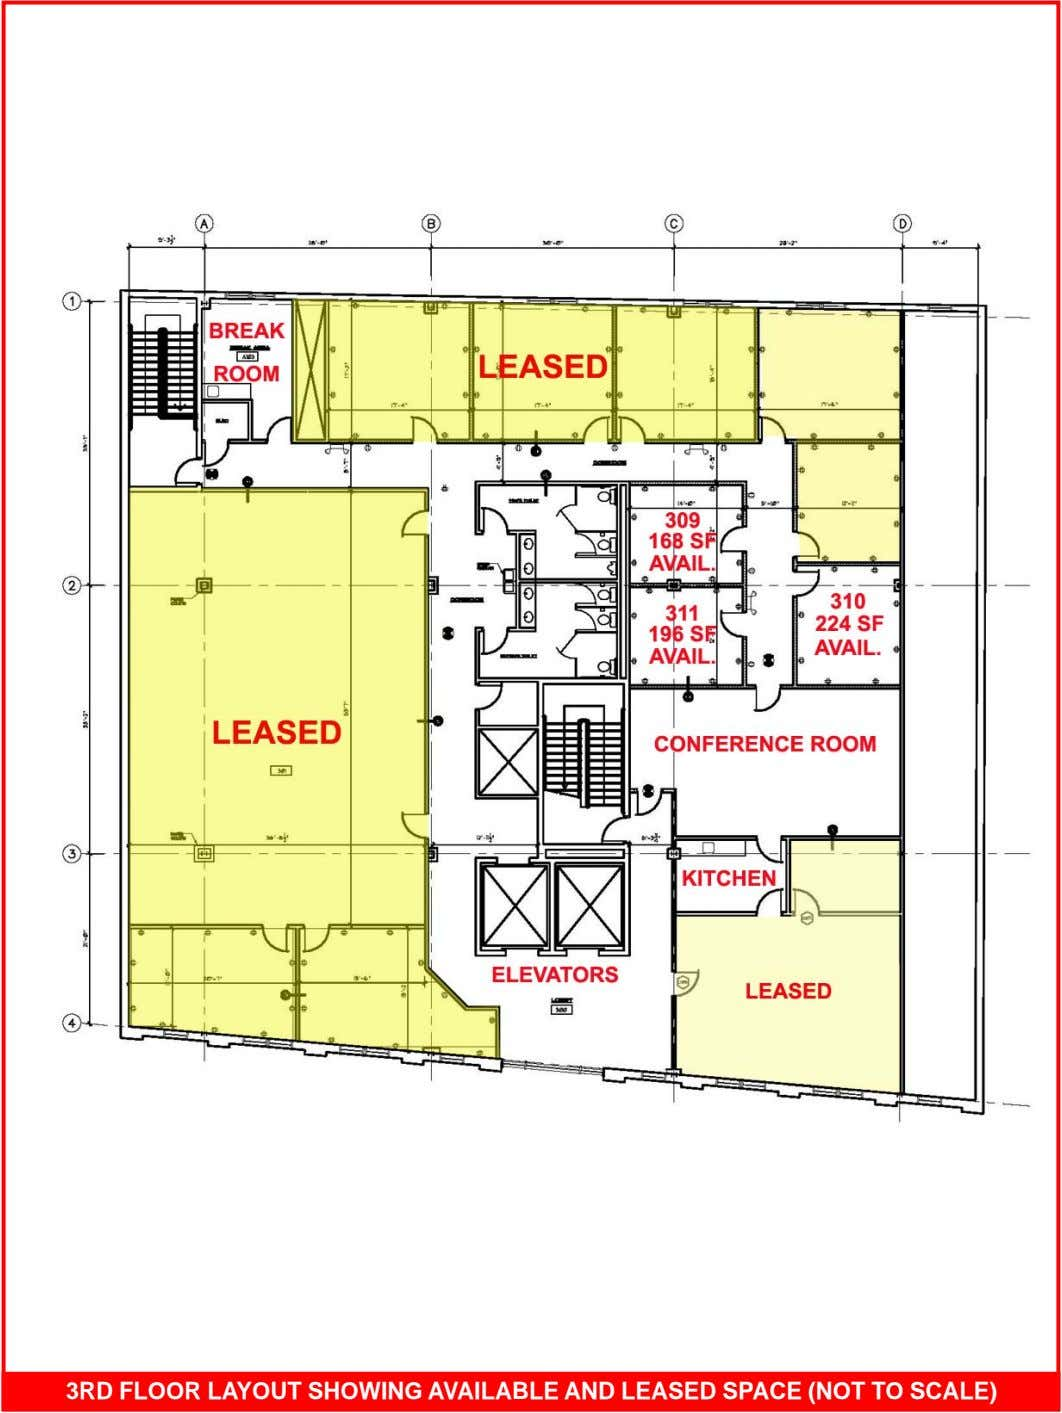 3RD FLOOR LAYOUT SHOWING AVAILABLE AND LEASED SPACE (NOT TO SCALE)